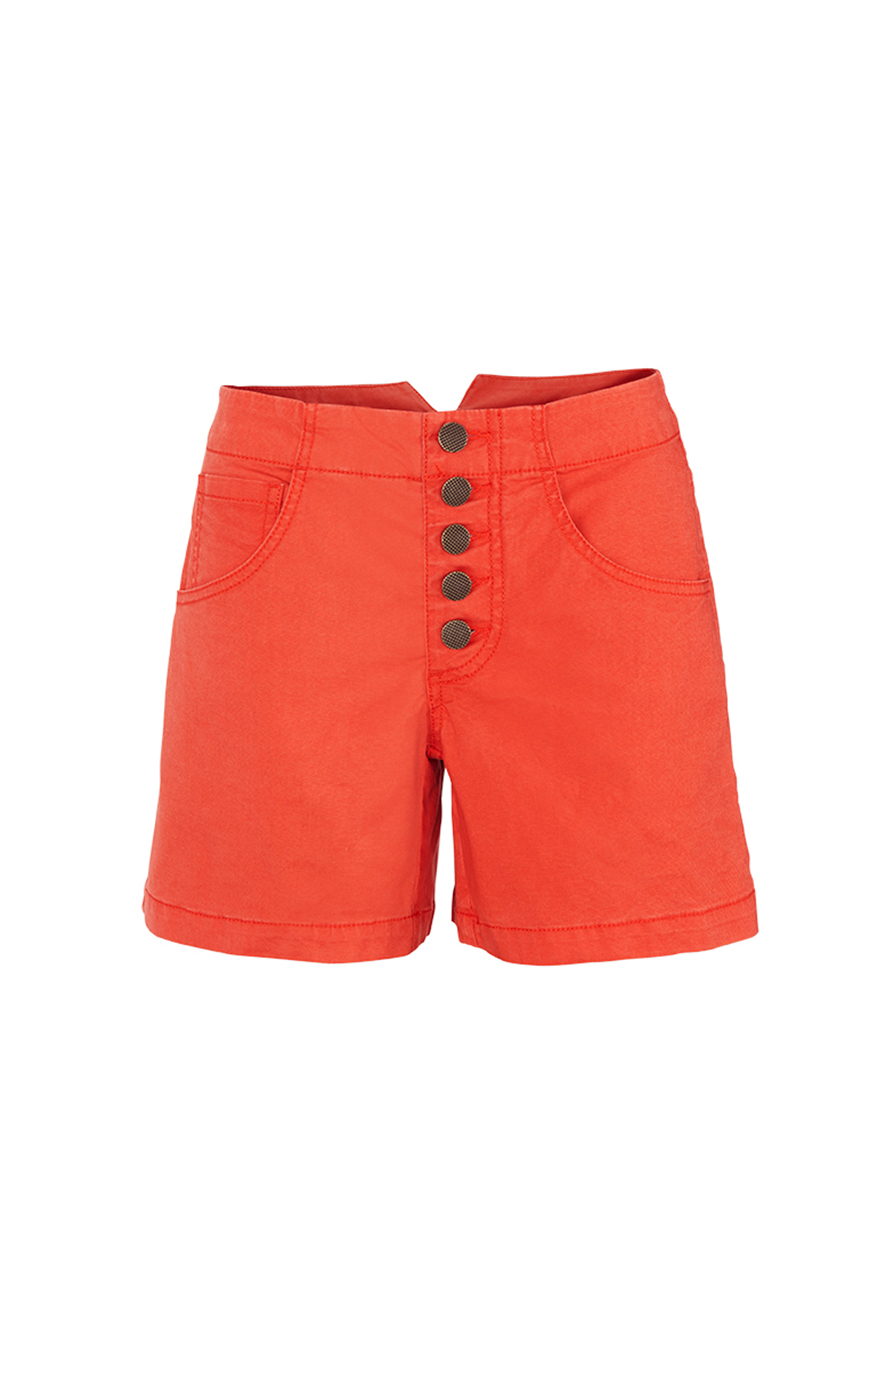 cabi's Button Fly Short